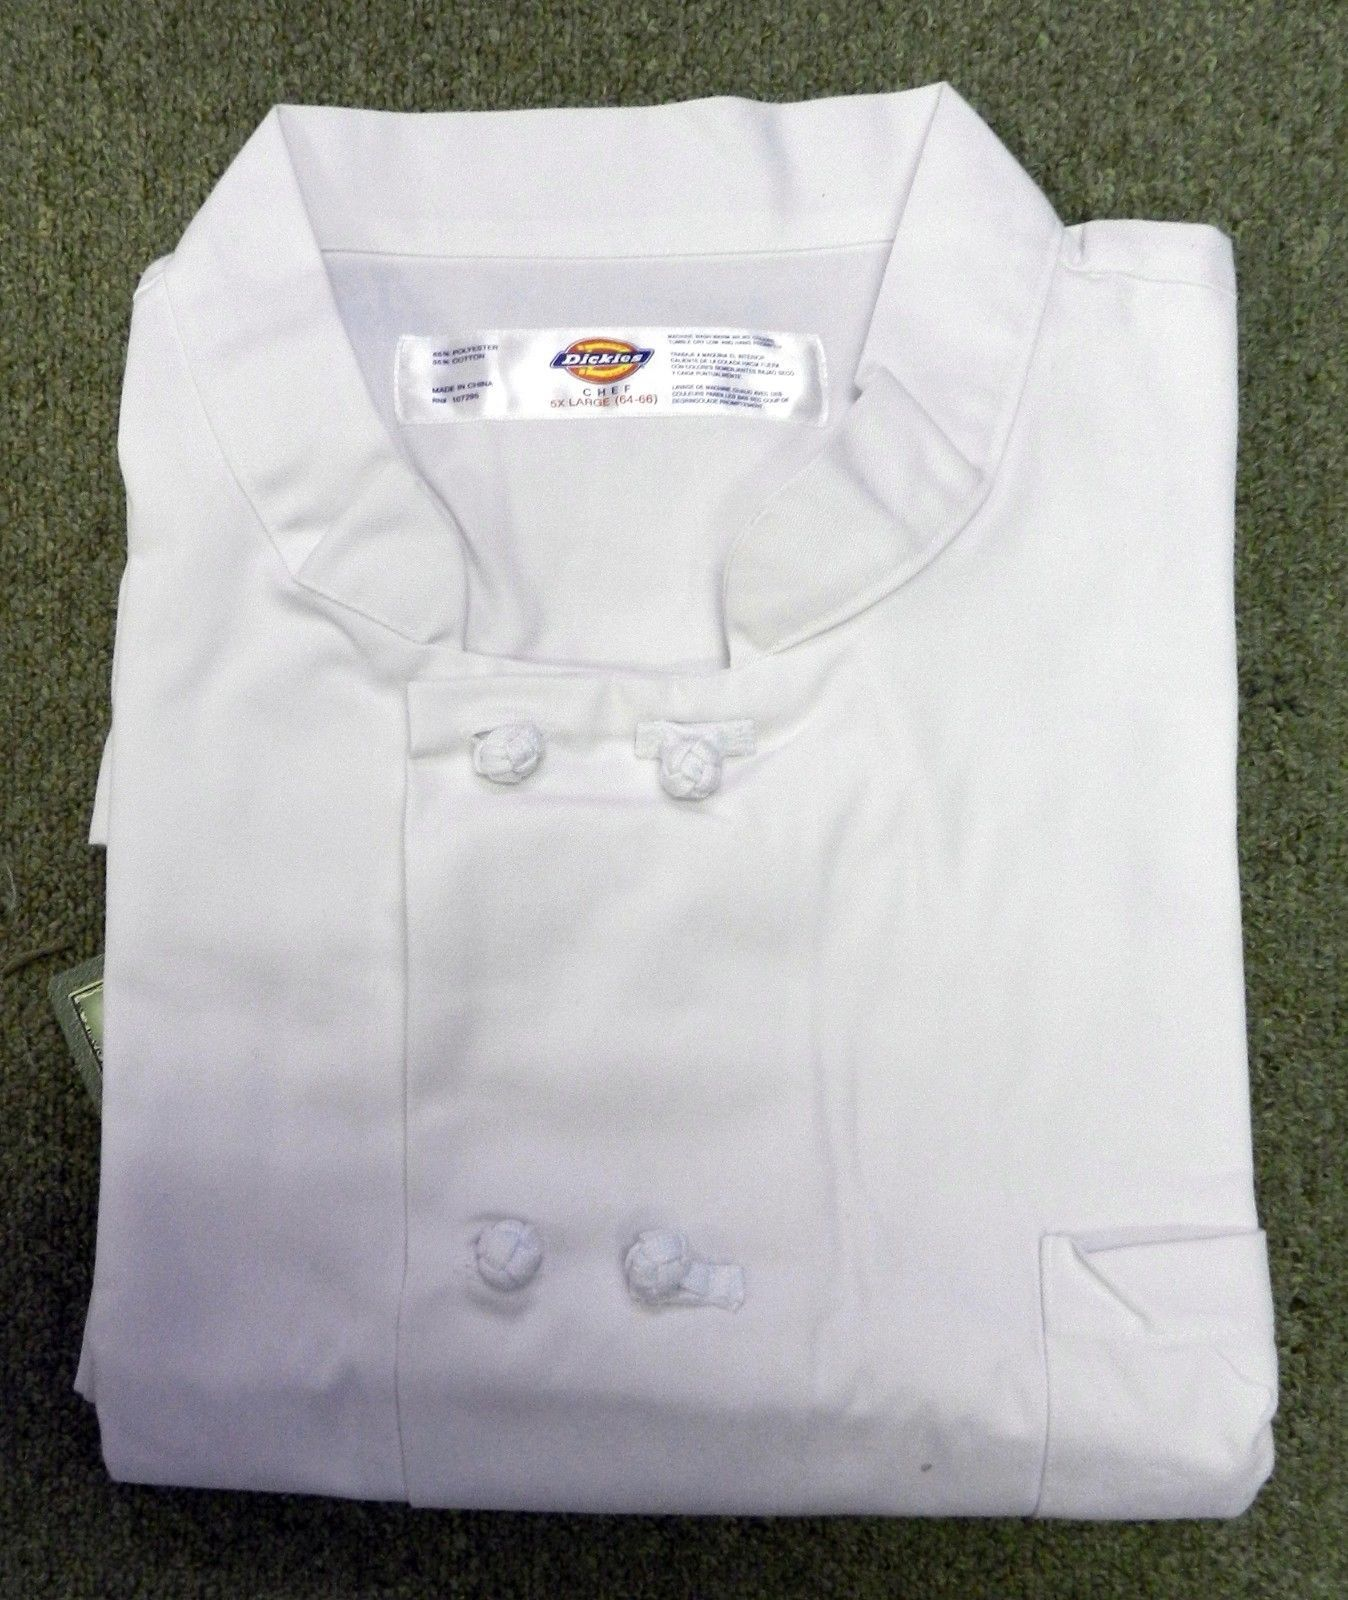 Dickies Restaurant Cloth Knot Button White Uniform Chef Coat Jacket 5XL New